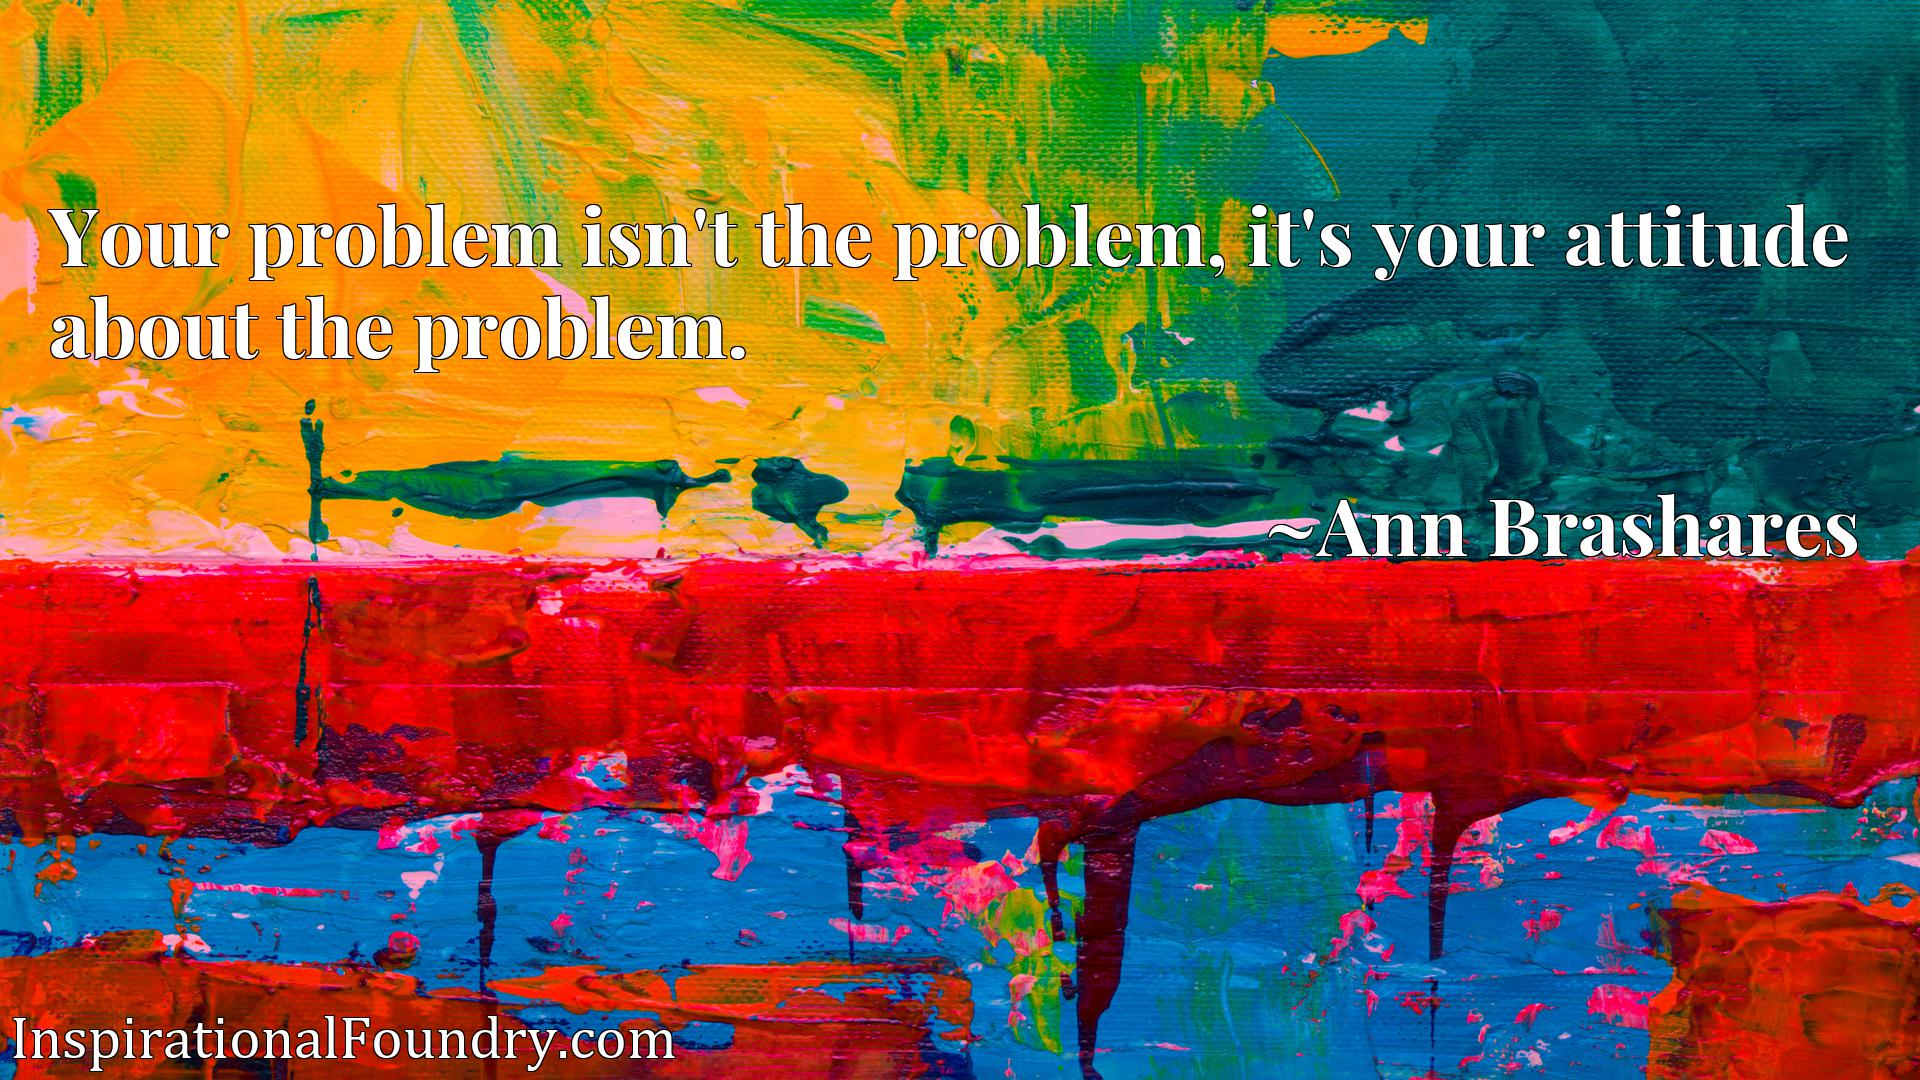 Your problem isn't the problem, it's your attitude about the problem.